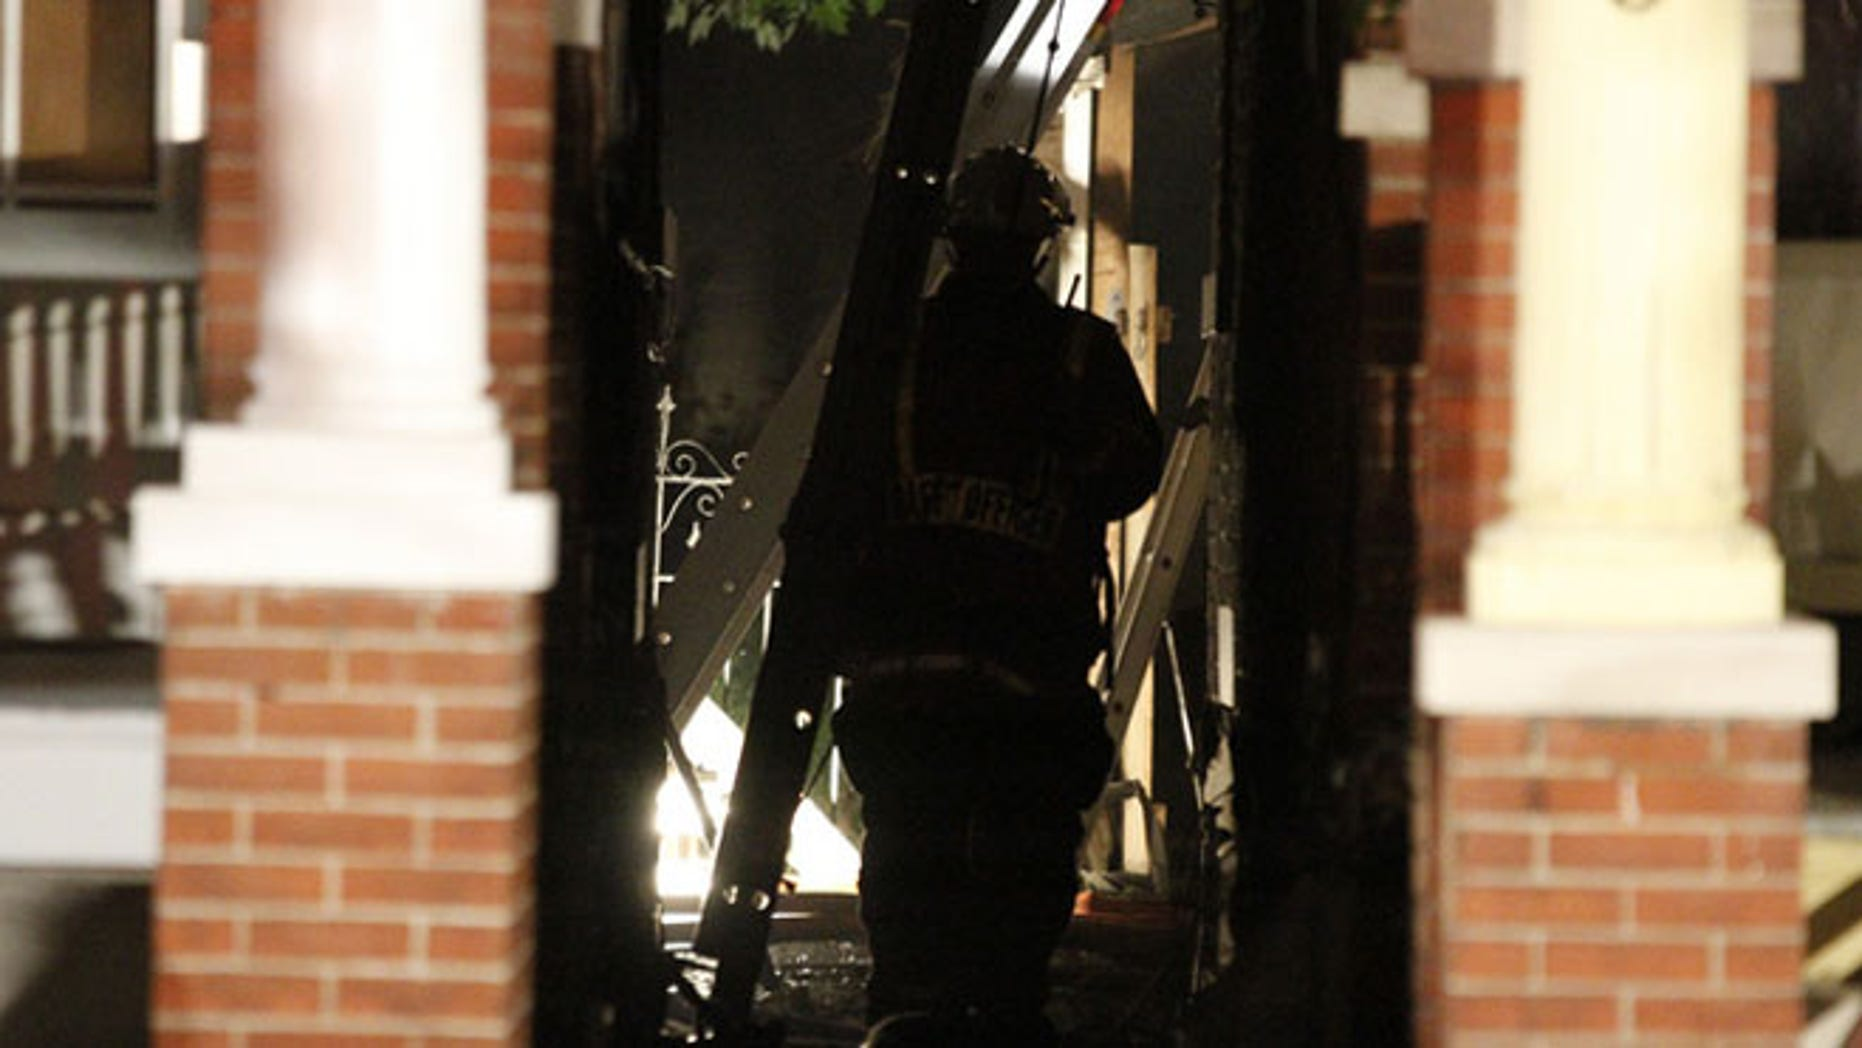 July 4: Firefighters inspect a home where four people died in an early morning fire.